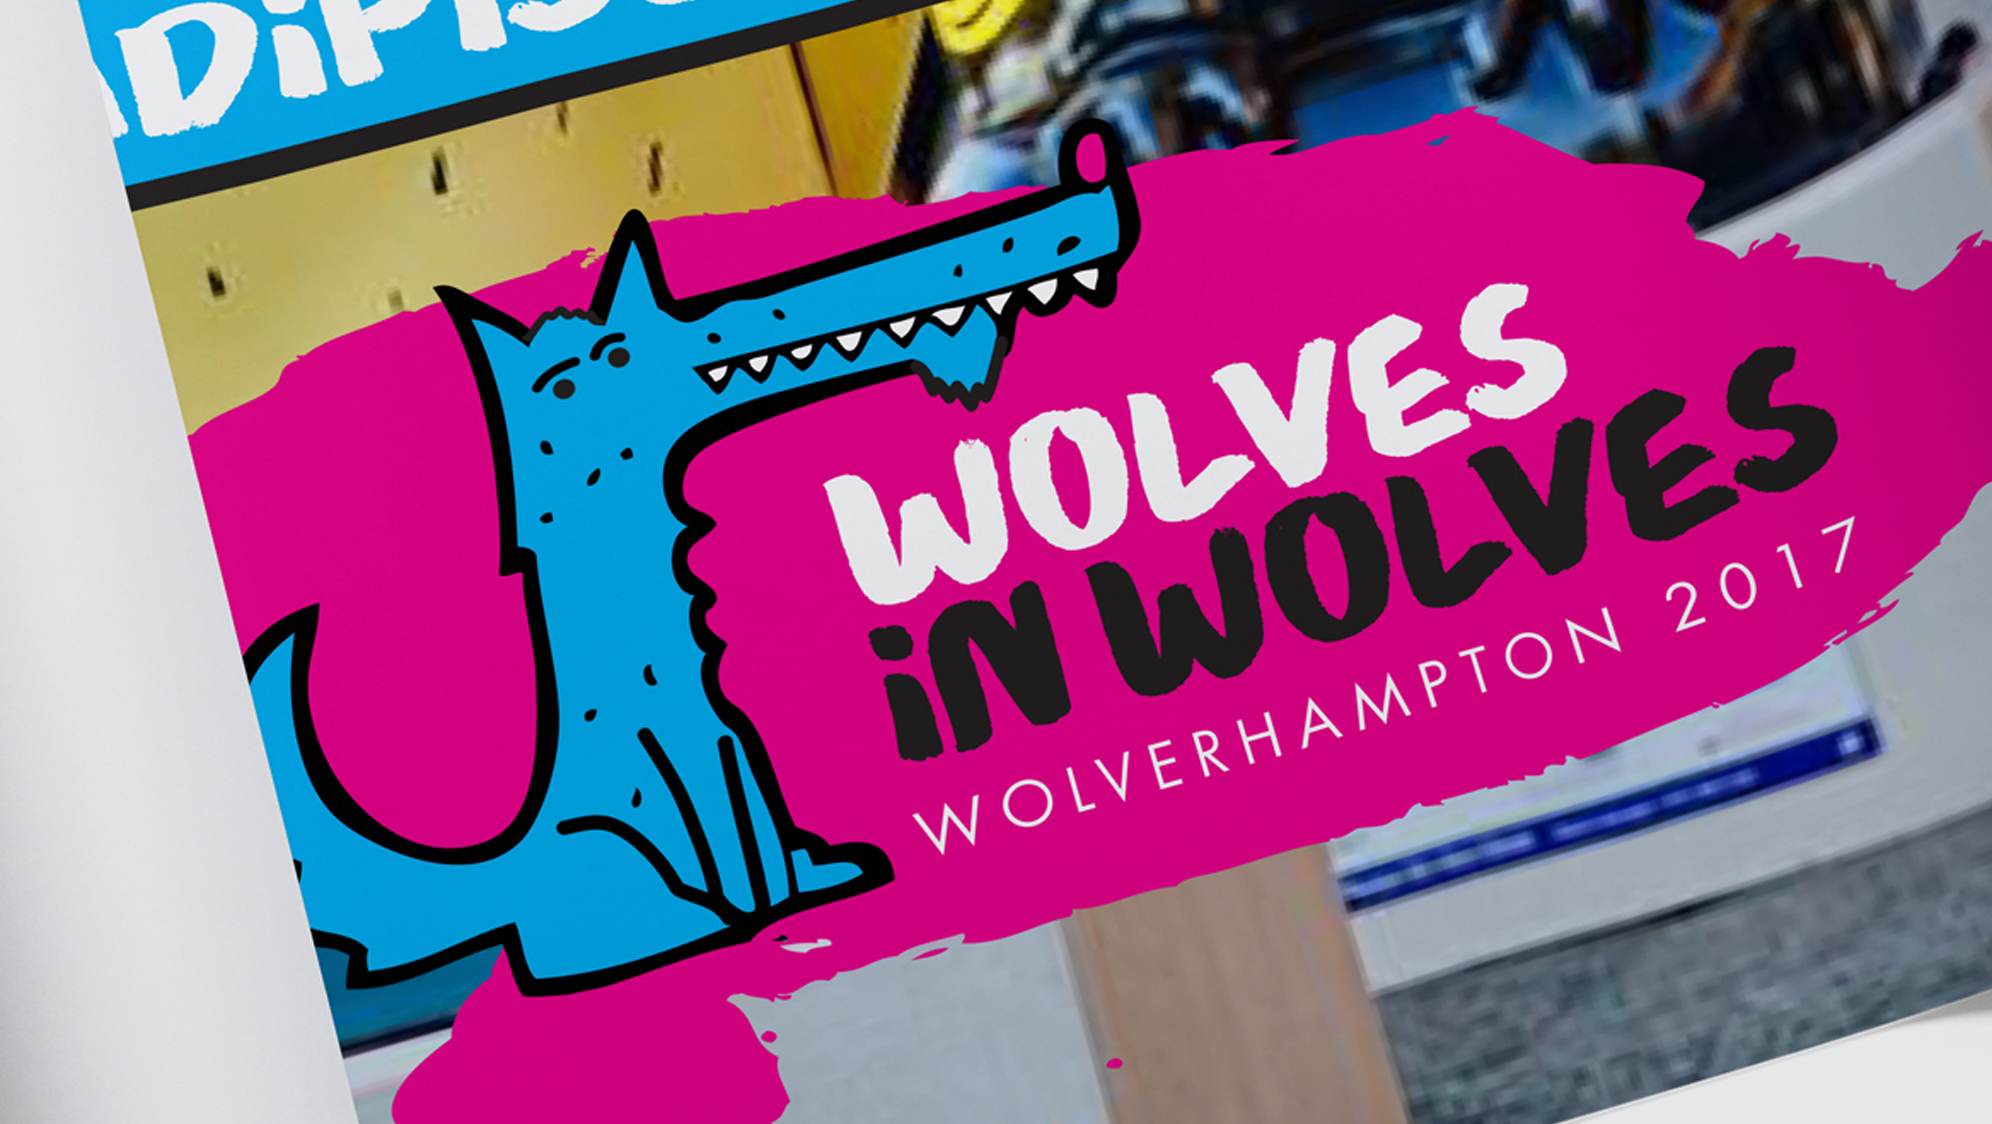 wolves in wolves logo design - eighty3creative